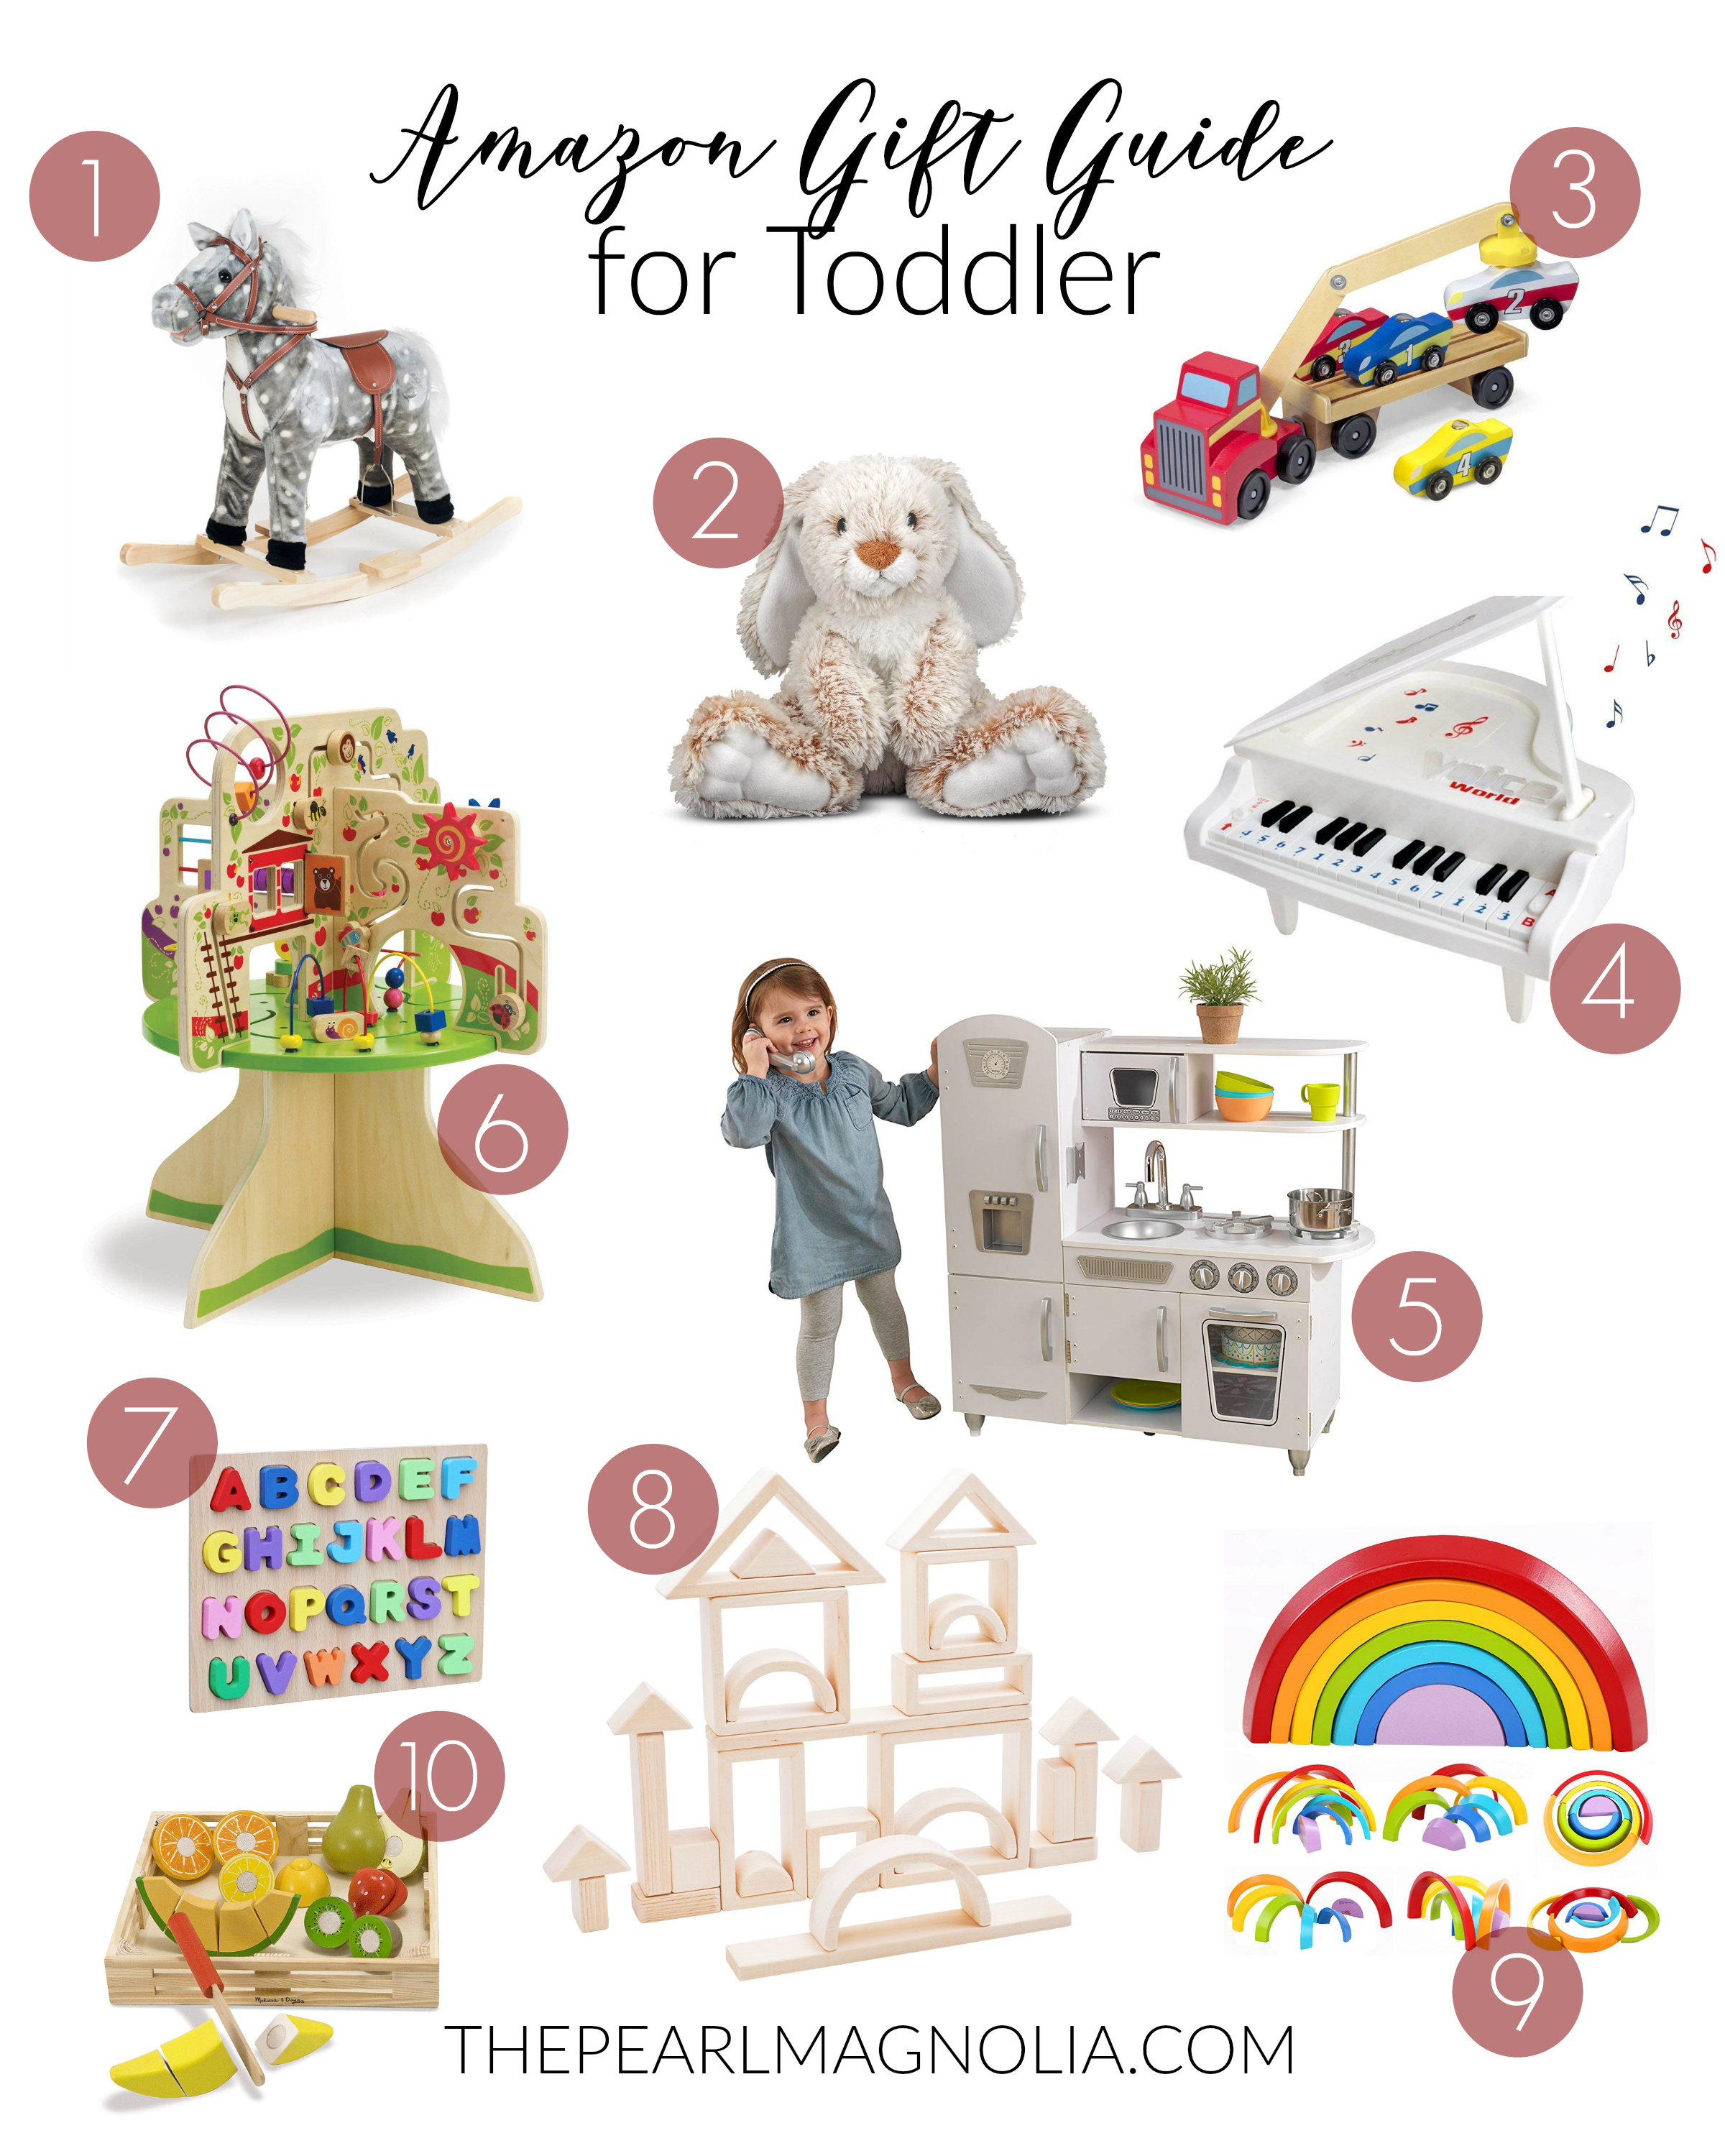 Amazon Gift Guide for Toddler